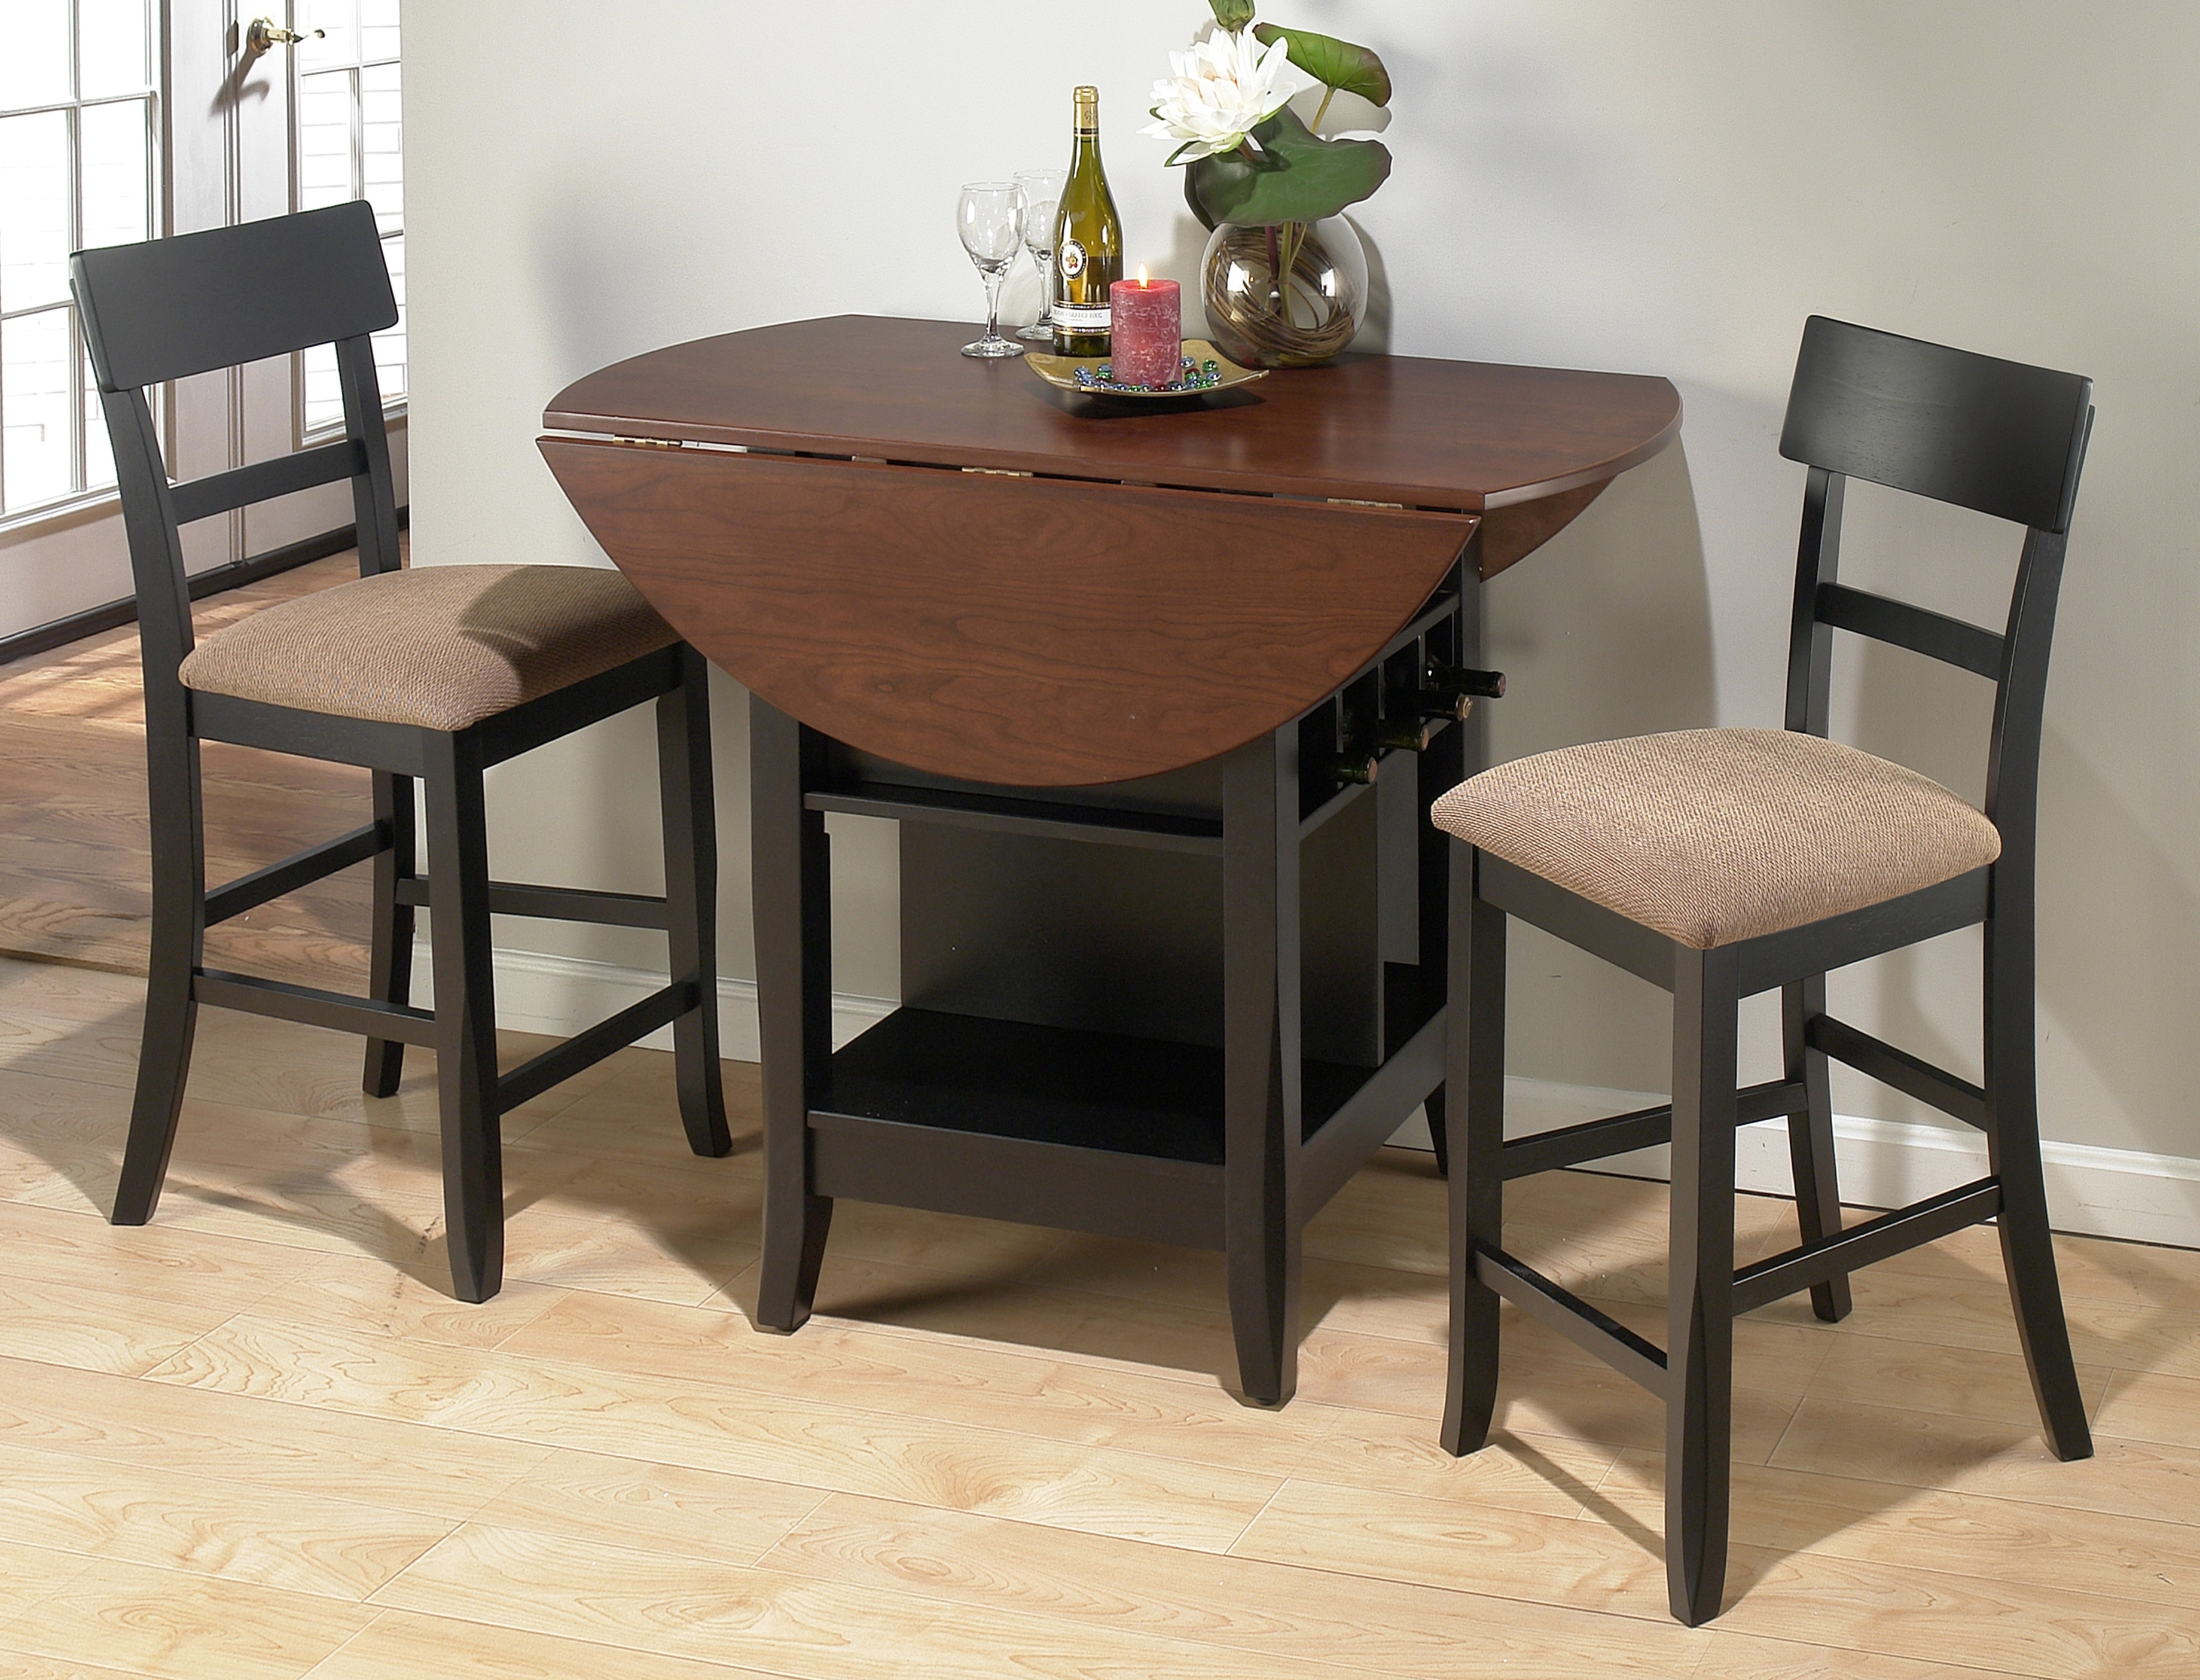 Trendy Dining Room Small Dining Table Designs Kitchen Dining Sets For Small With Regard To Cheap Dining Tables And Chairs (View 24 of 25)